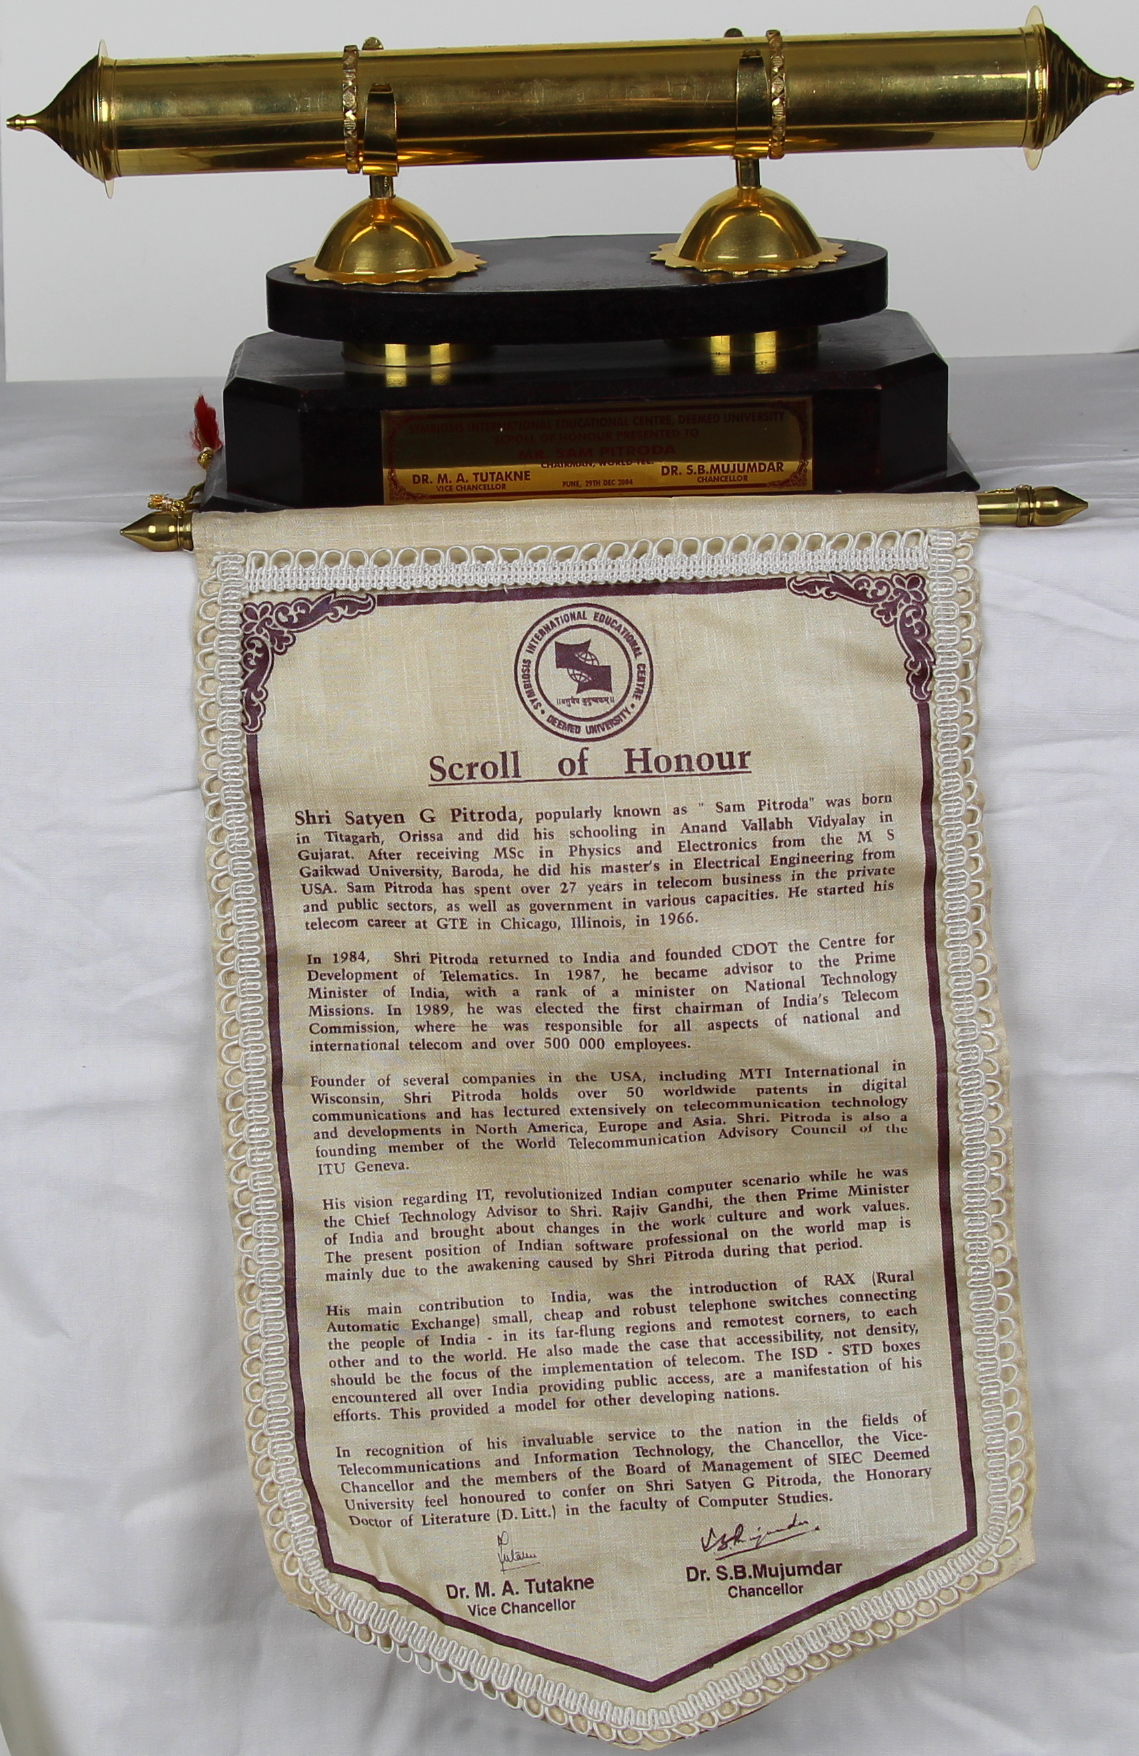 Scroll of Honor, Symbiosis International Educational Centre, Deemed University, 2004